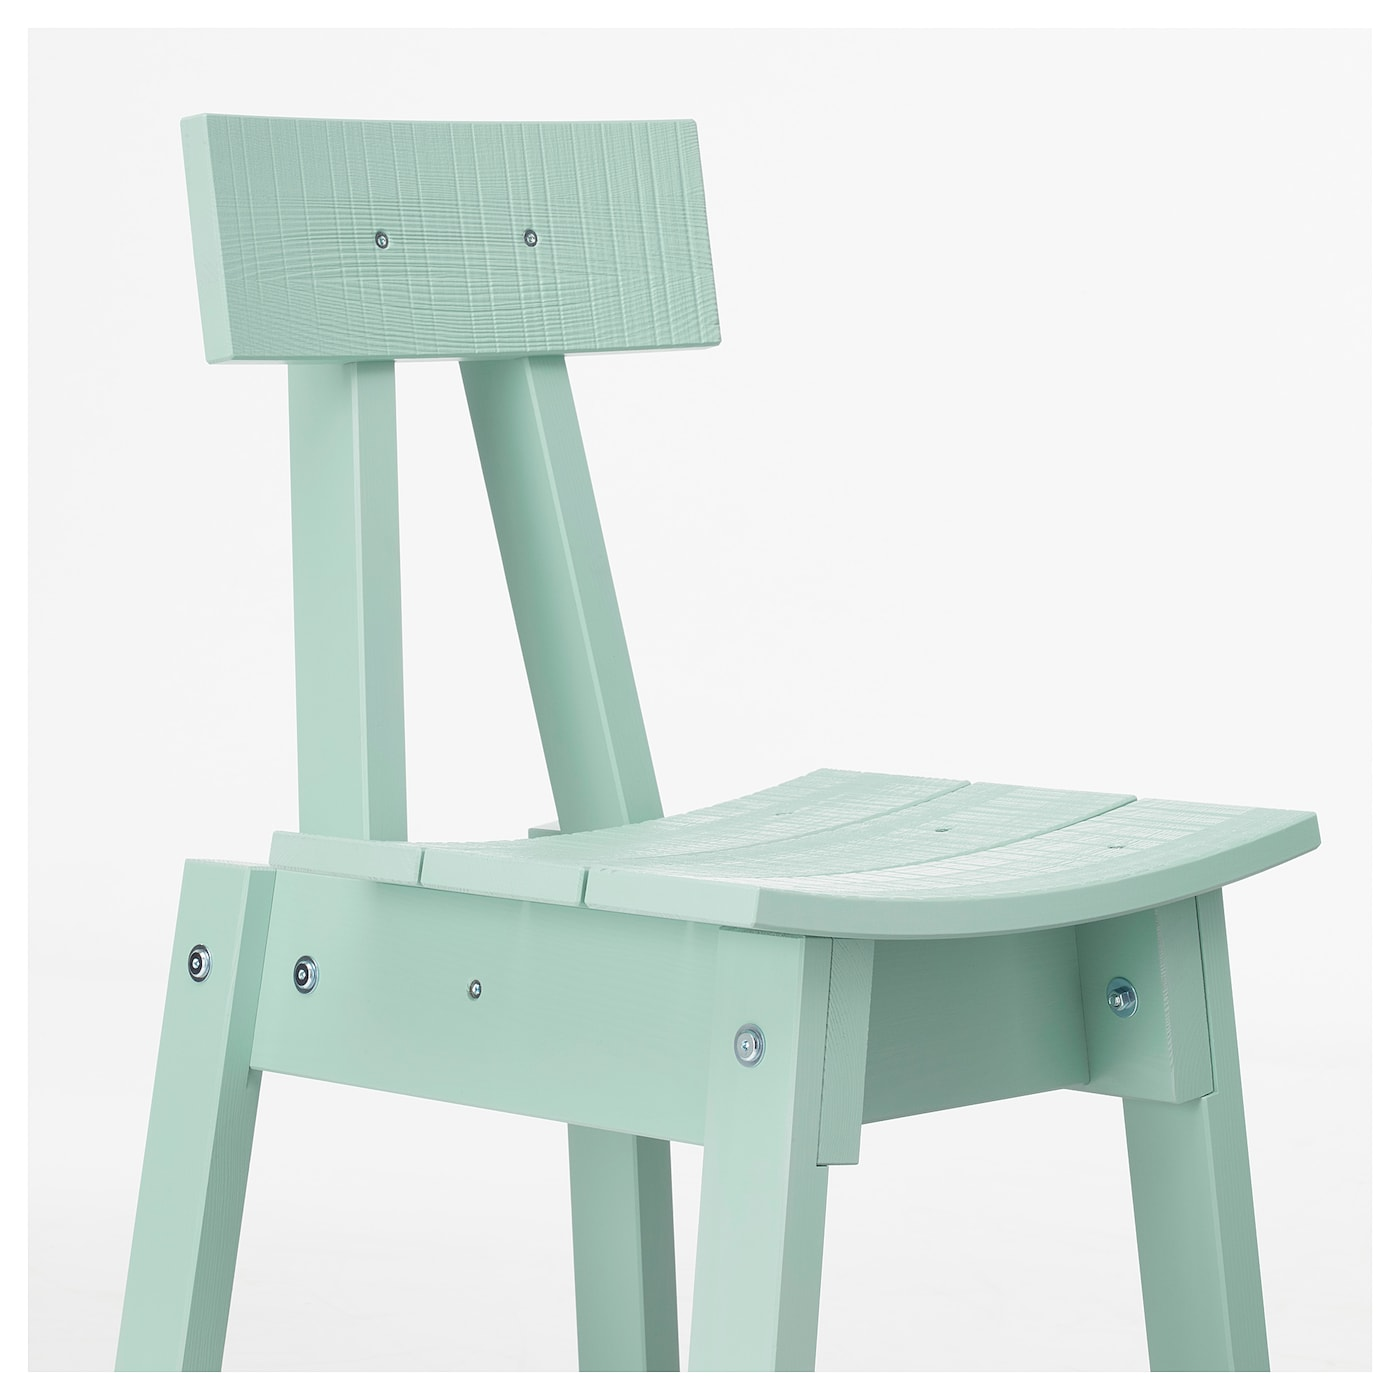 IKEA INDUSTRIELL chair You sit comfortably thanks to the chair's shaped back and seat.